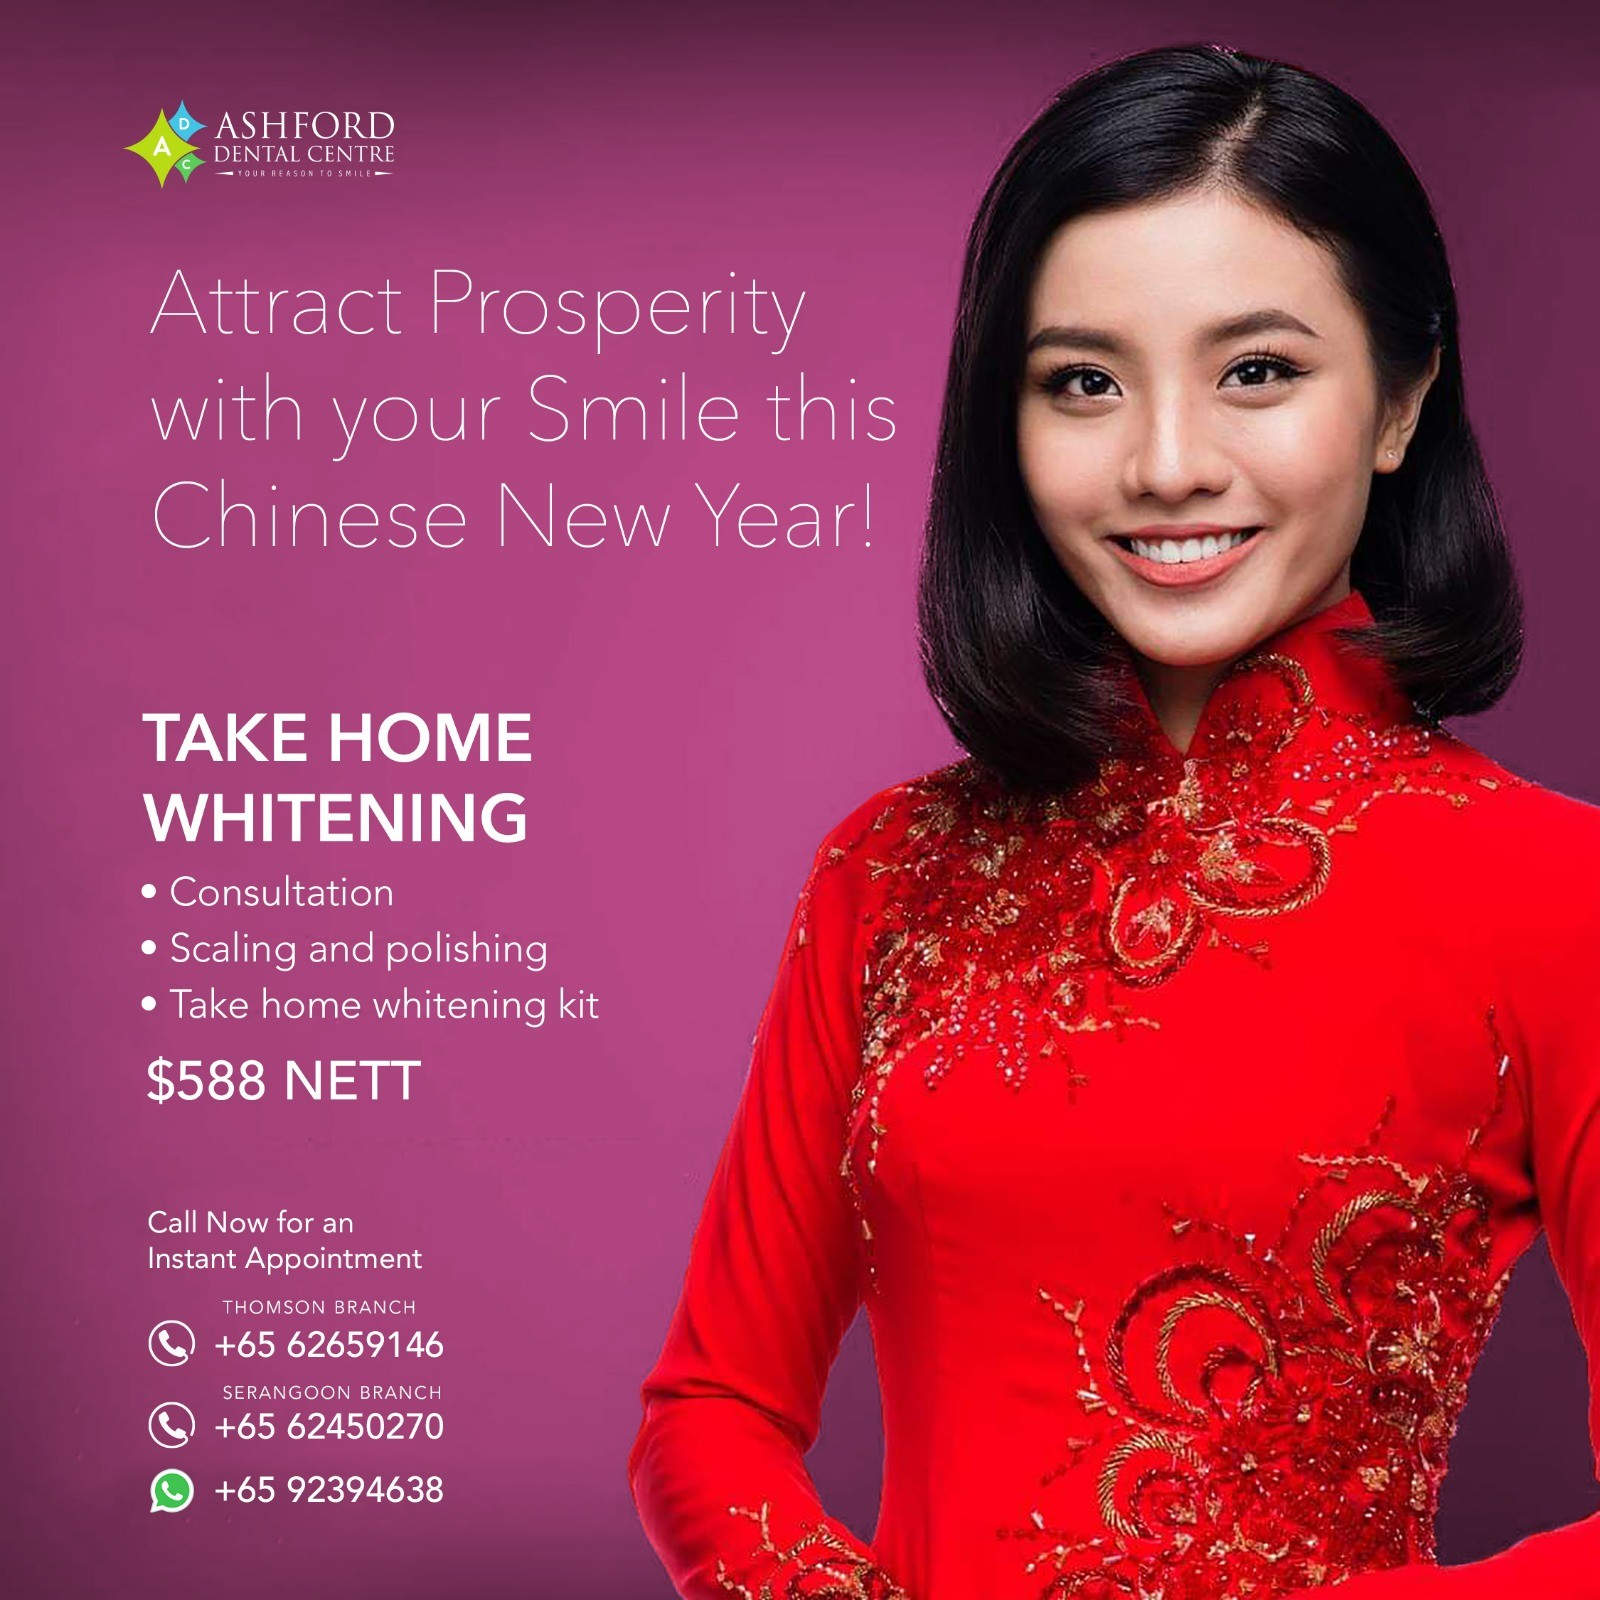 Ashford Dental Centre attract-prosperity Chinese New Year Uncategorized